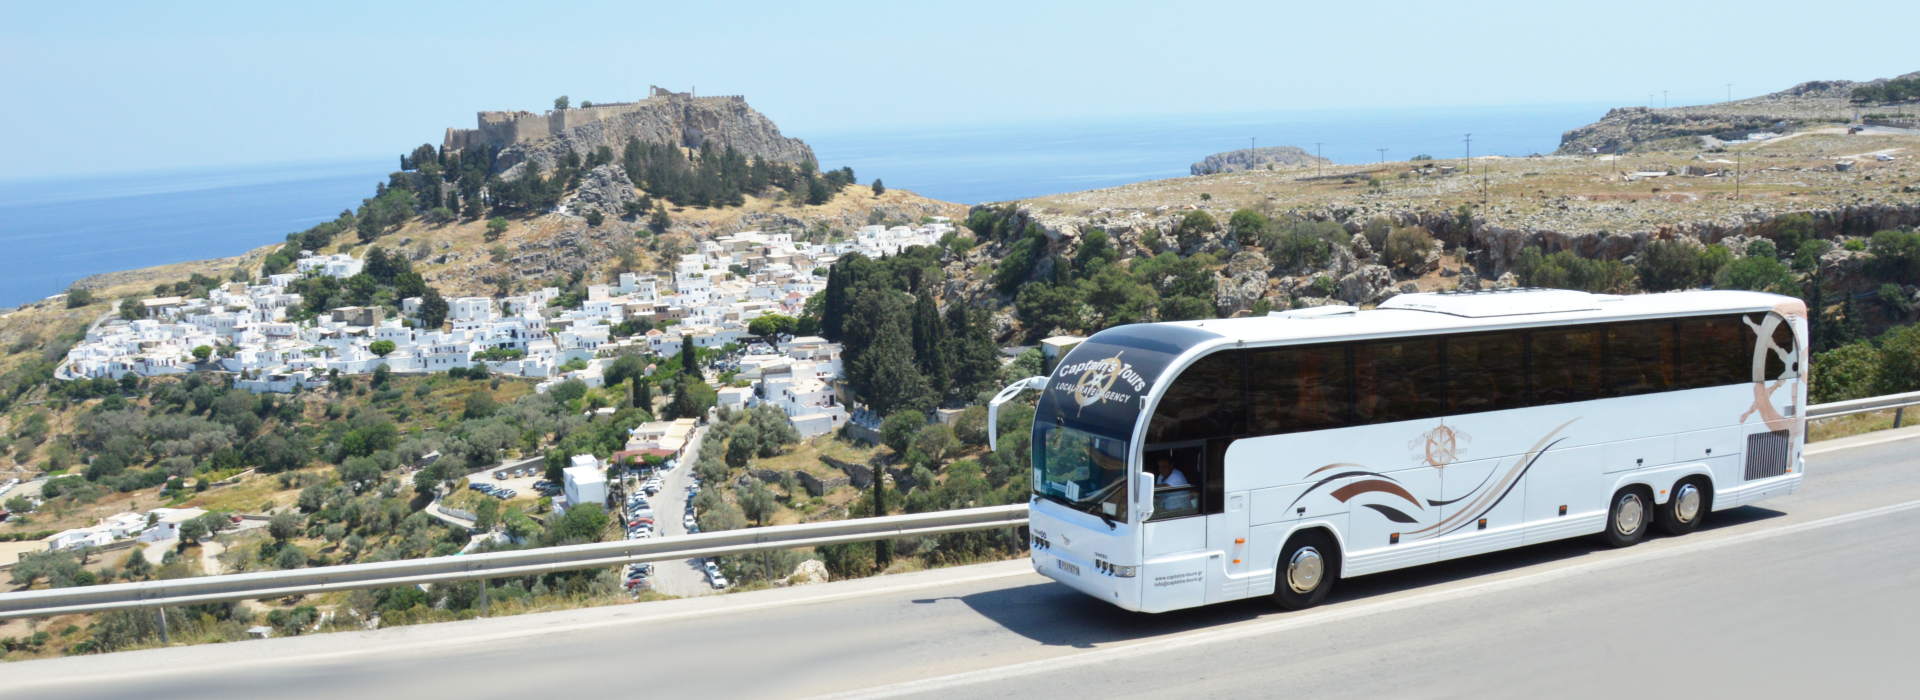 Captains Tours Excursions Tours in Rhodes, Greece